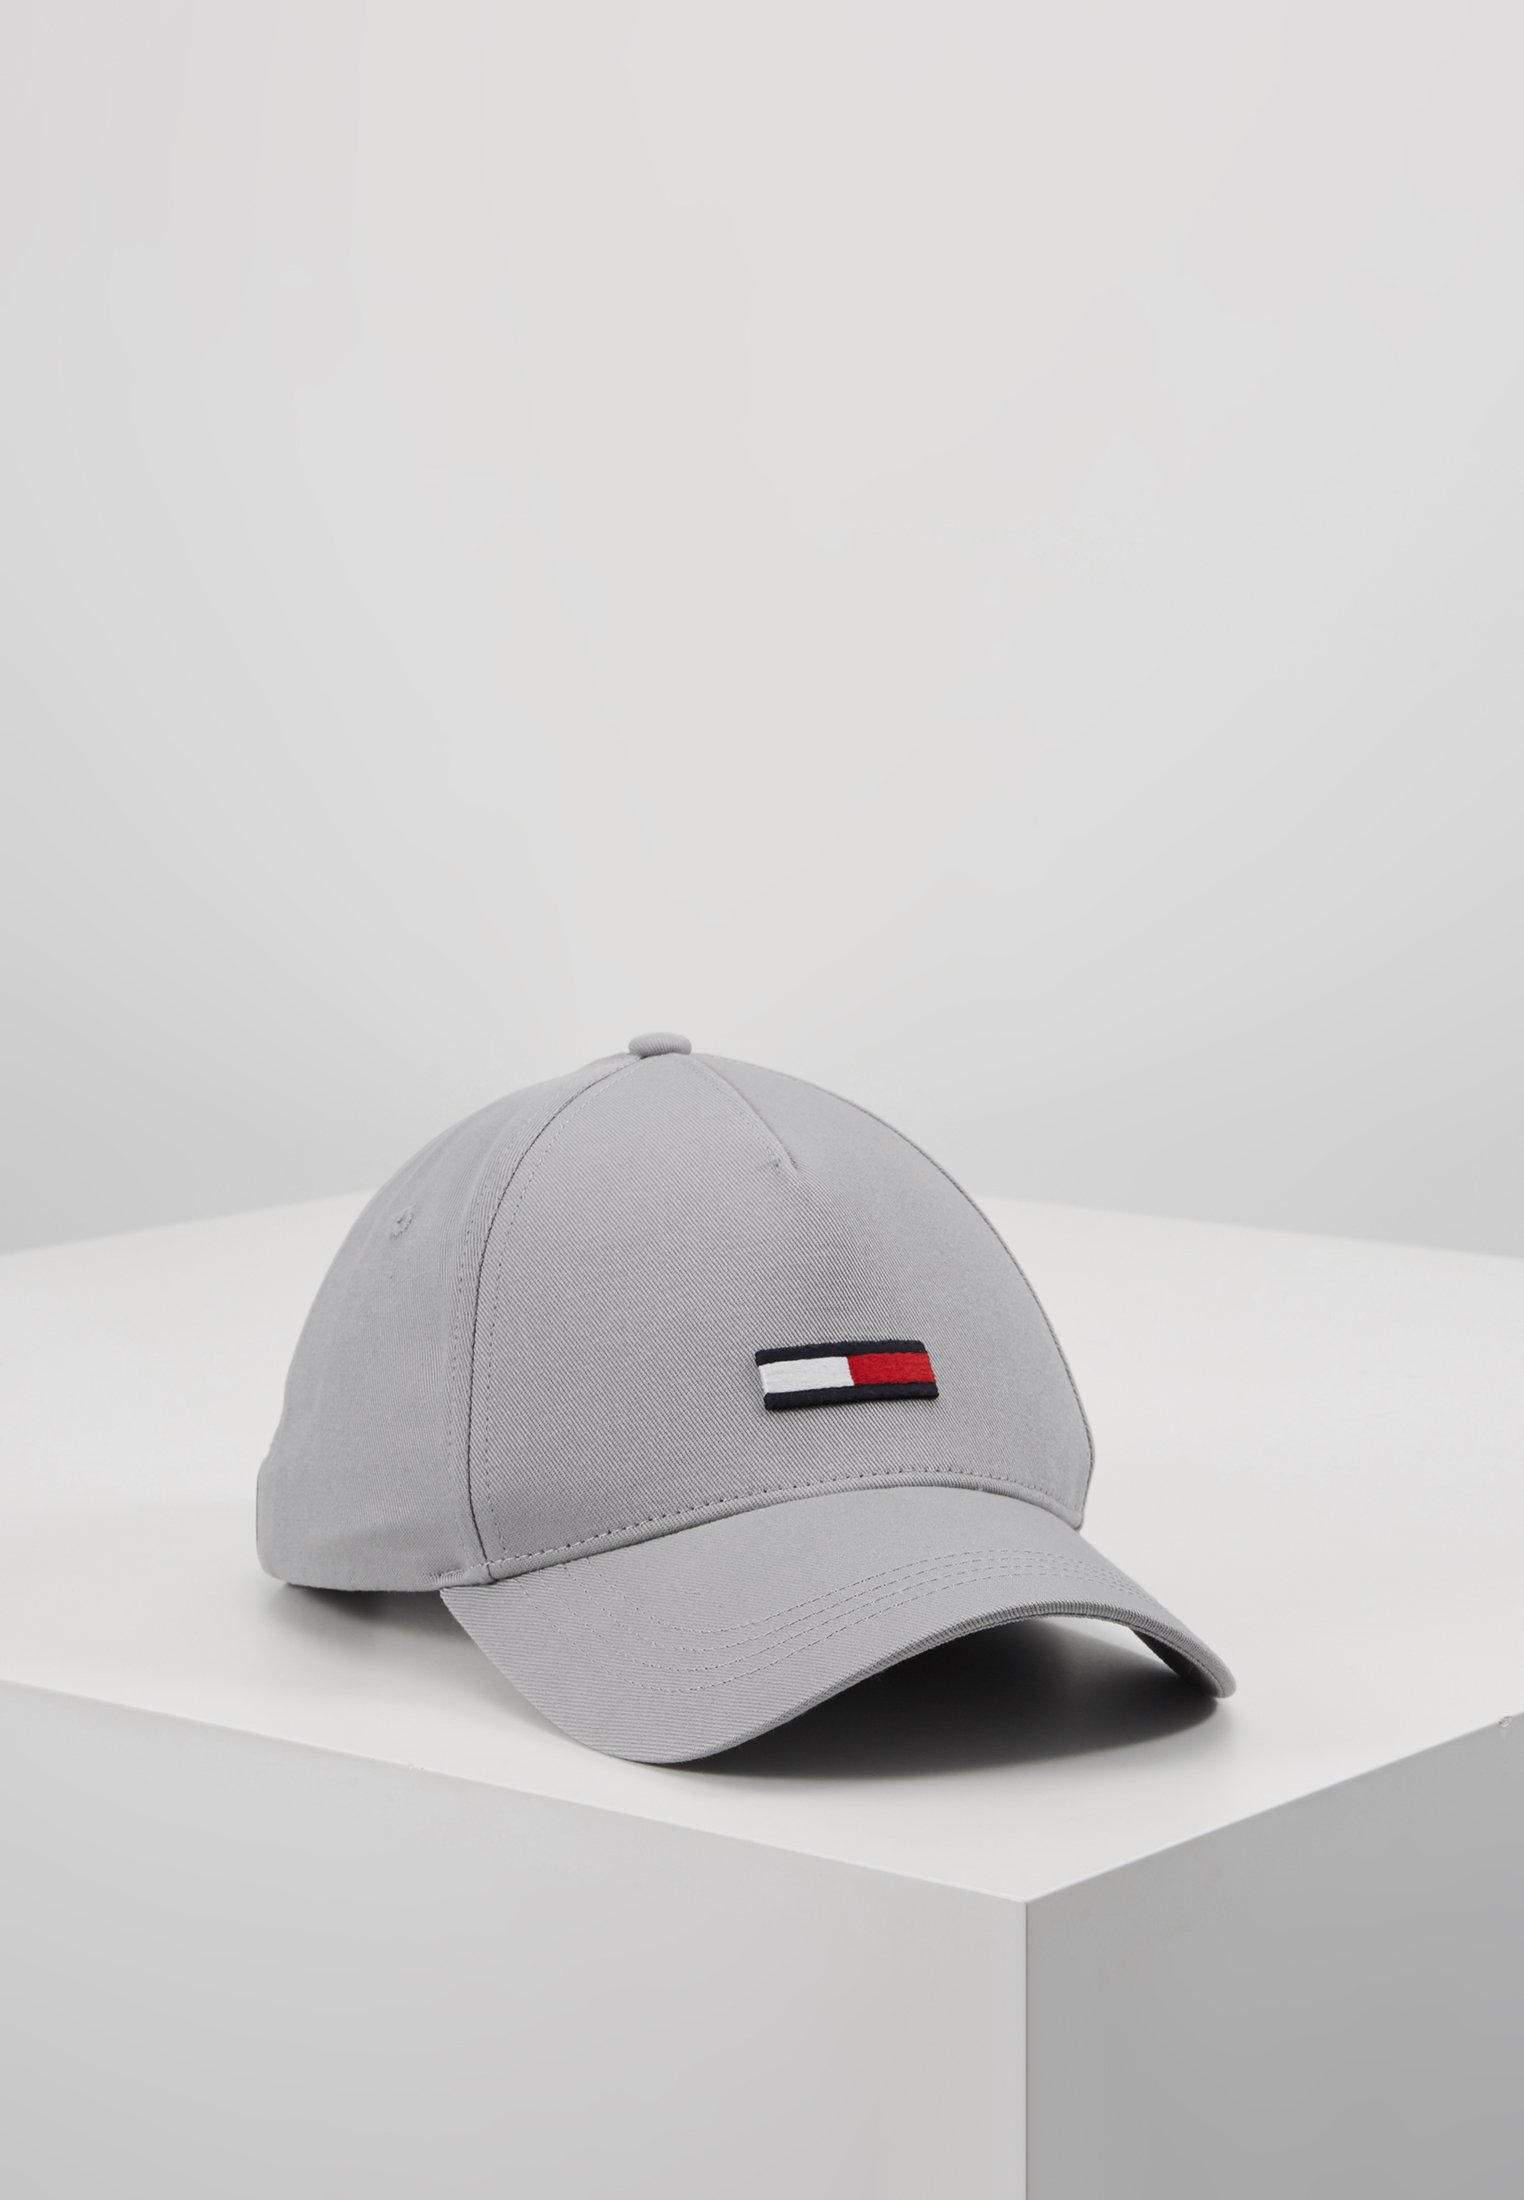 Jeans FlagCasquette Tommy Tommy Grey FlagCasquette FlagCasquette Grey Tommy Jeans Tommy Jeans Grey xCtQrohsdB